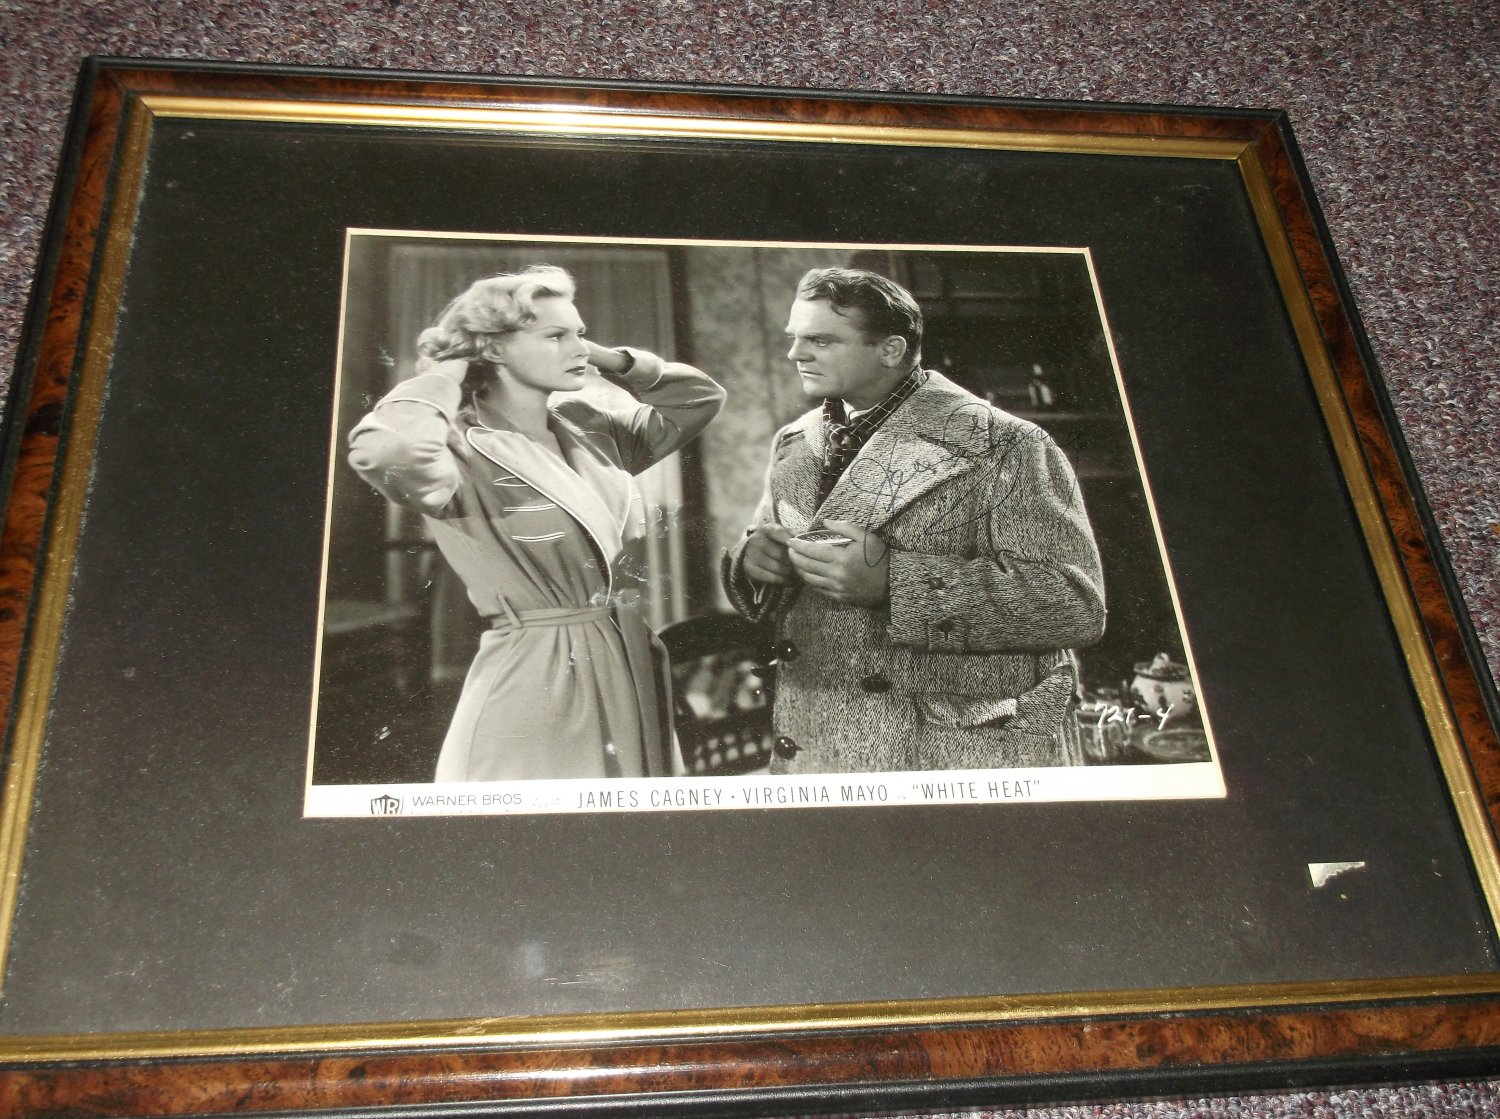 James Cagney 1899-1986 signed photo framed